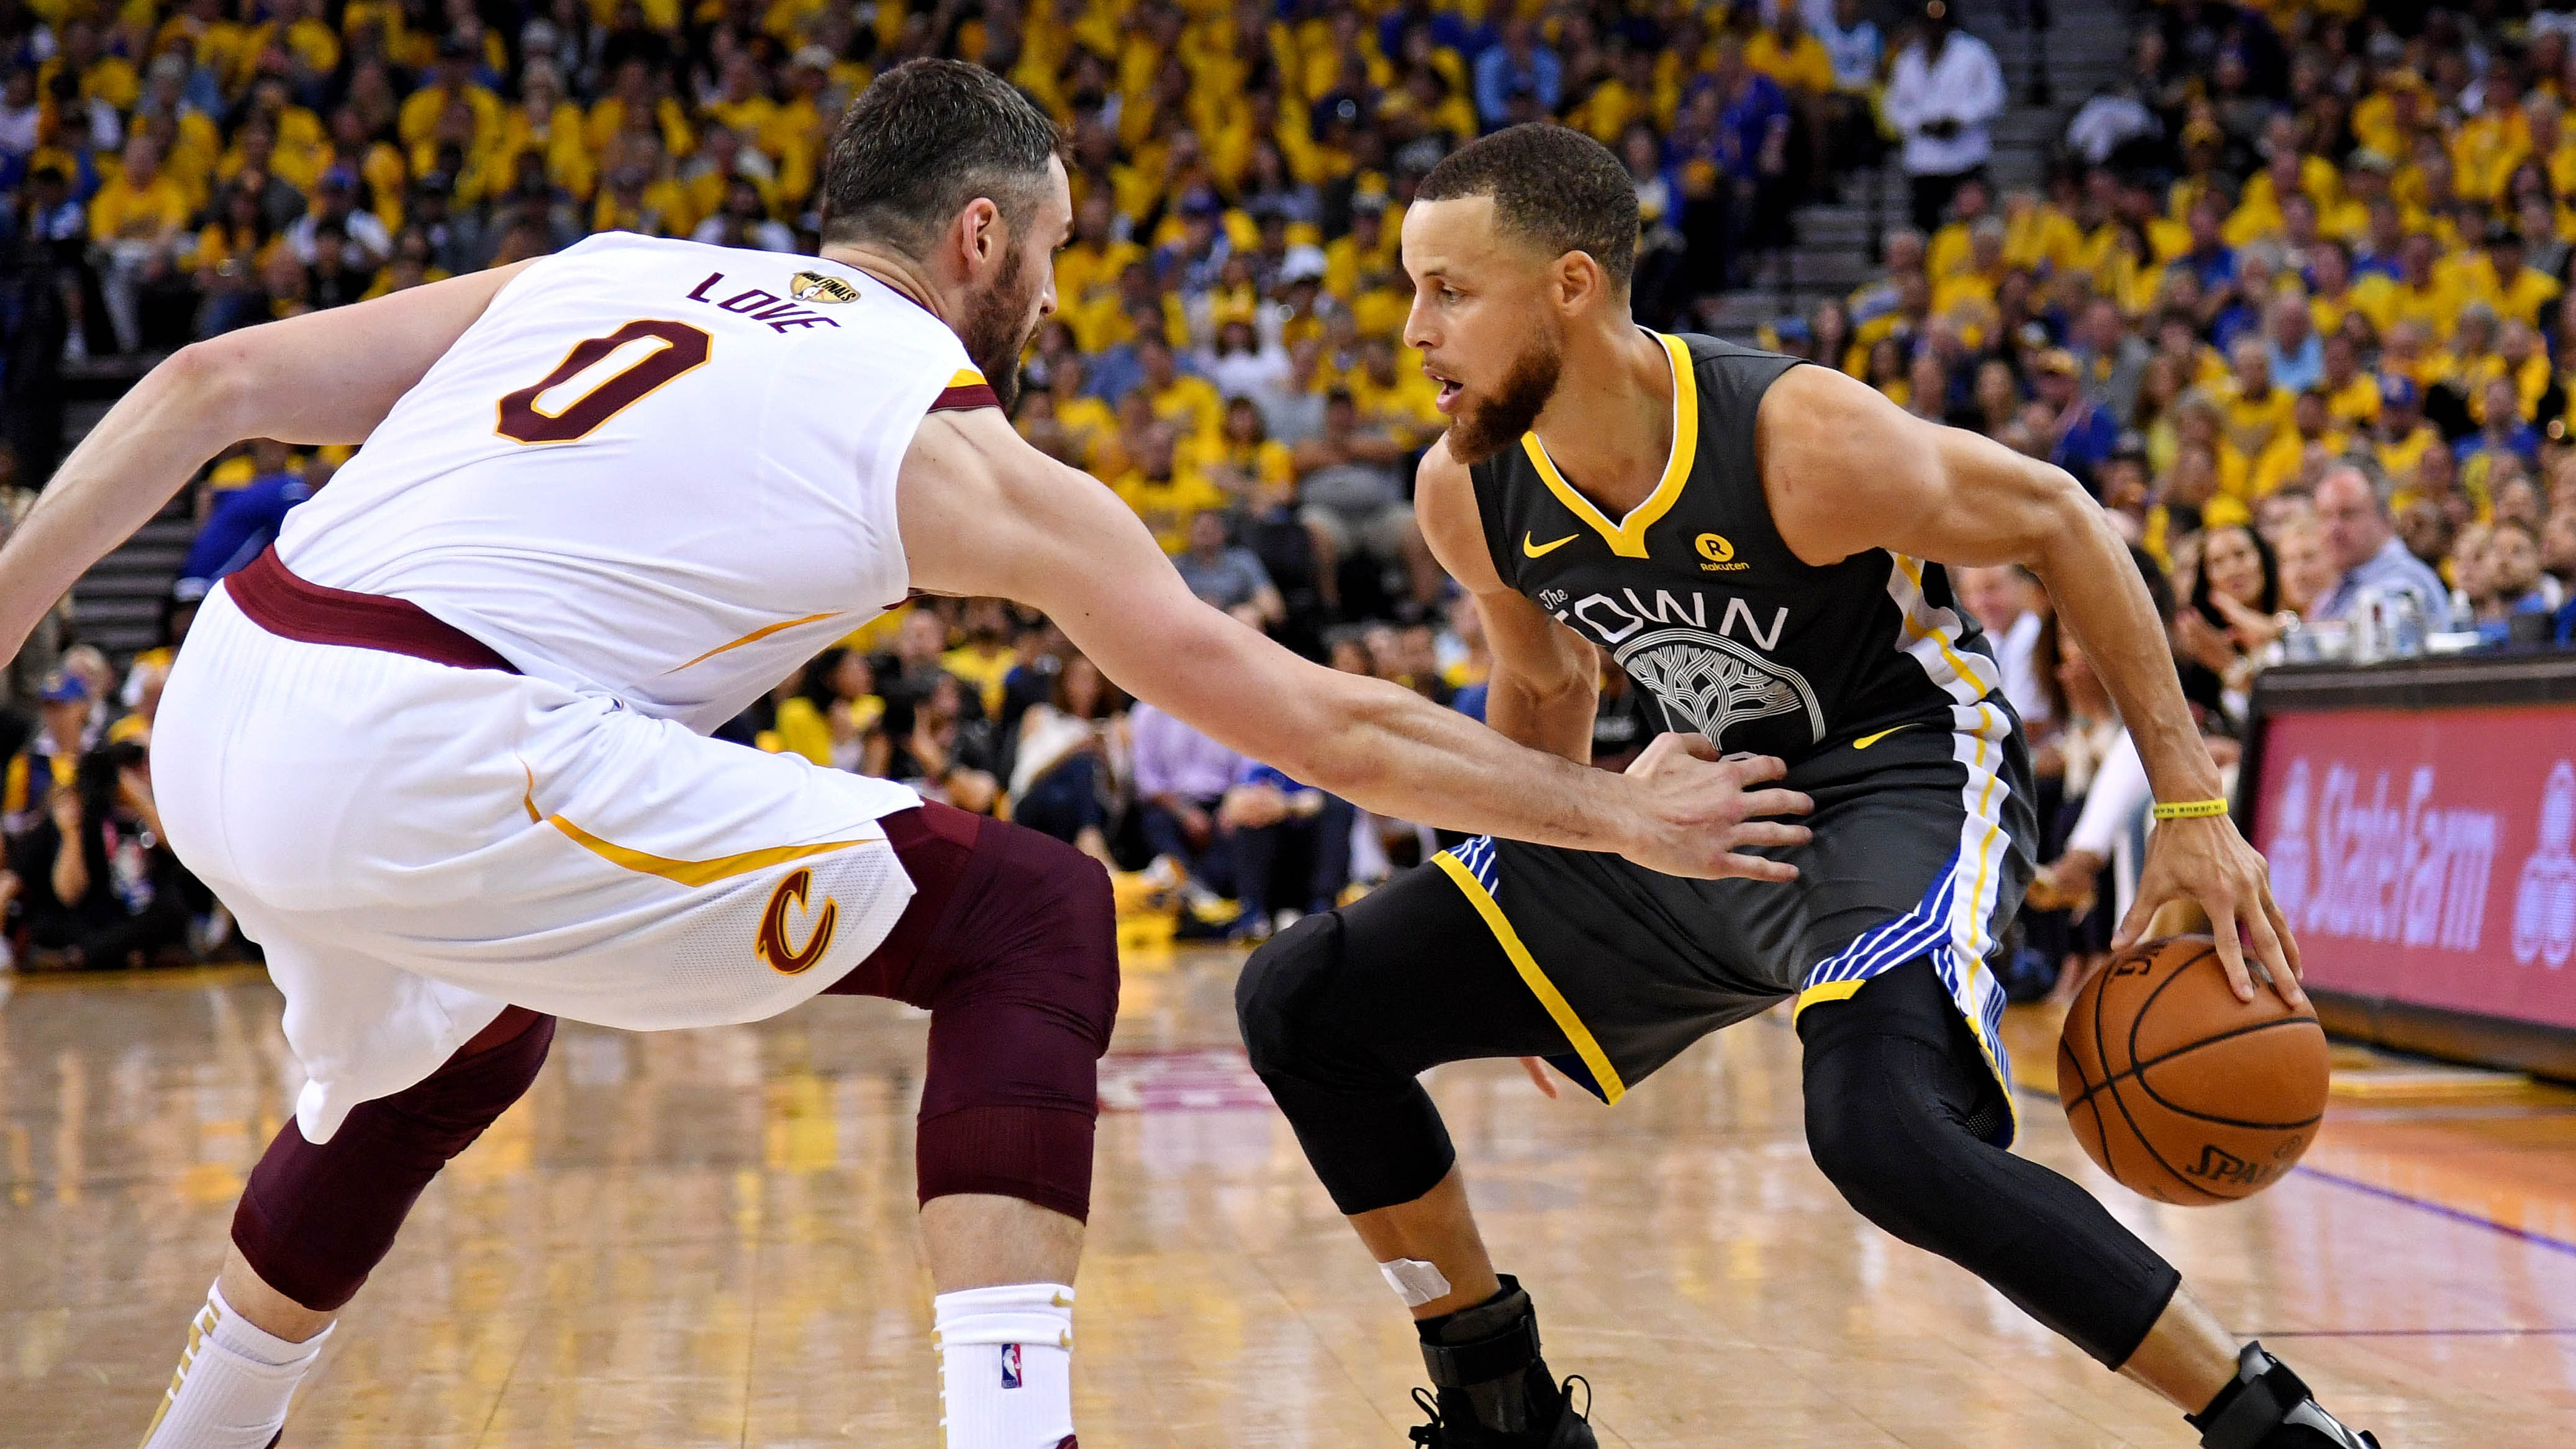 GAME 2 RECAP: Warriors 122, Cavaliers 103